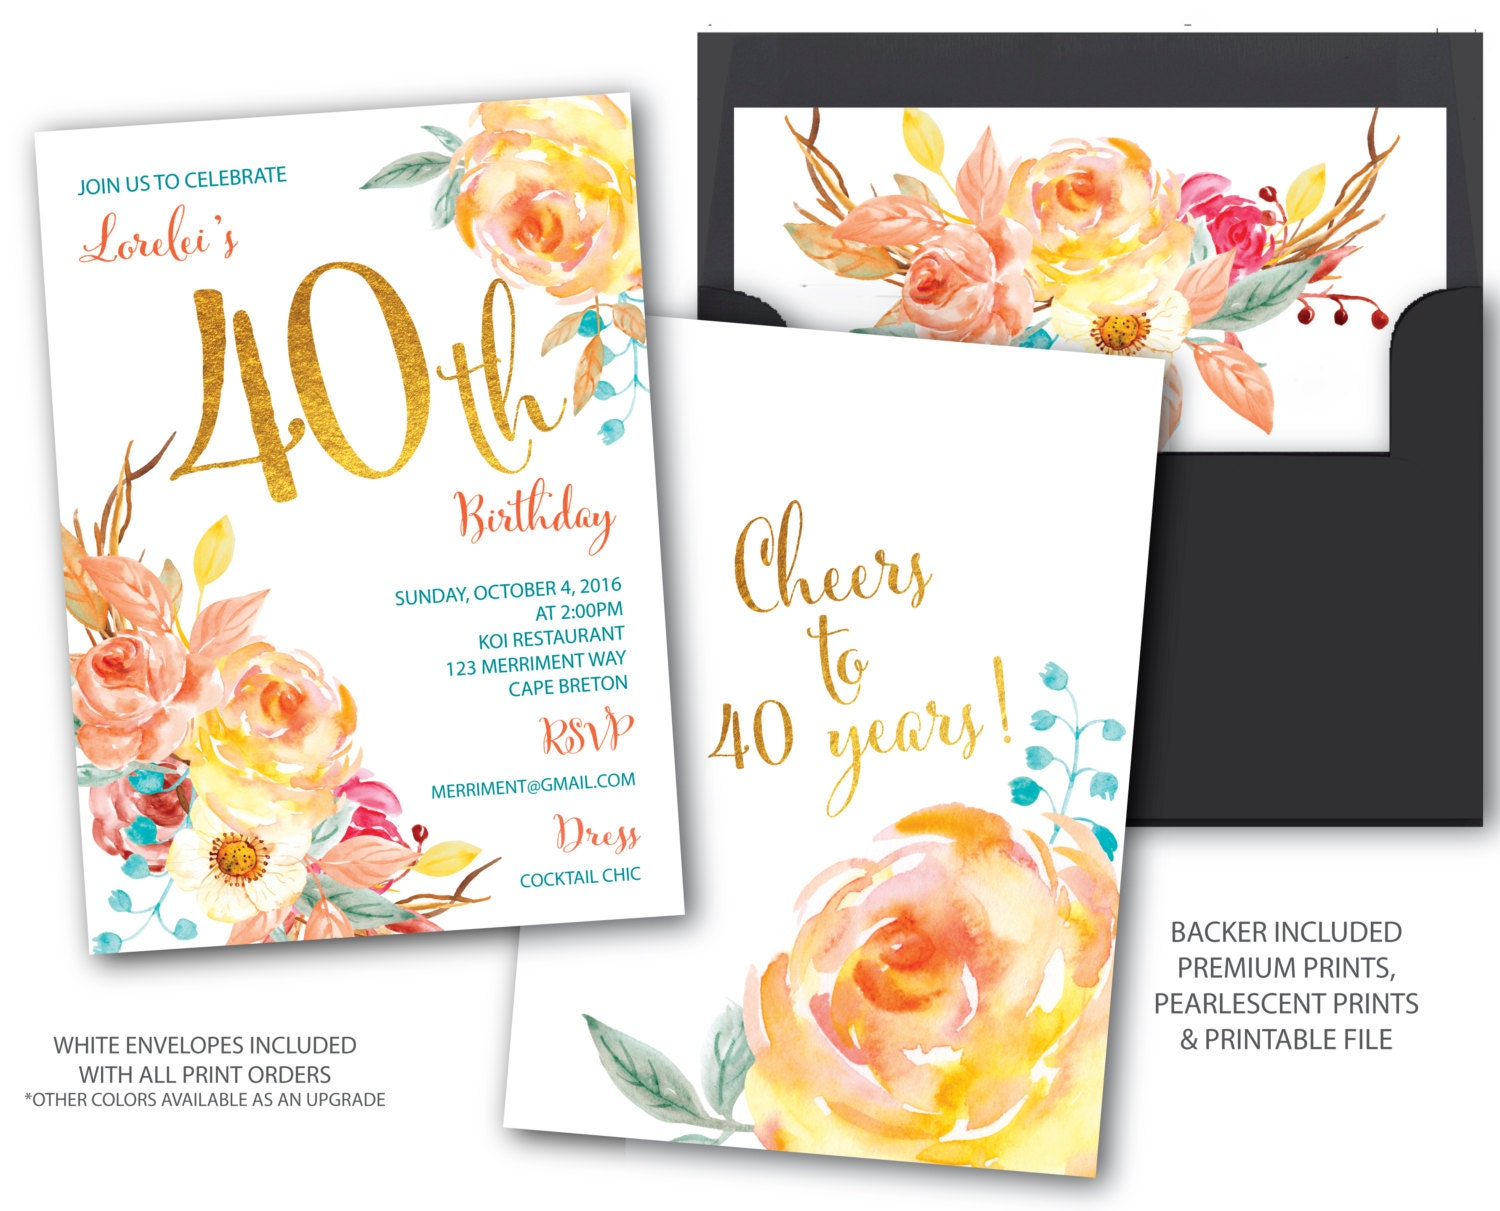 Fall 40 birthday invitation 40th birthday invitation boho fall 40 birthday invitation 40th birthday invitation boho chick cheers to 40 years gold watercolor cape breton collection stopboris Gallery